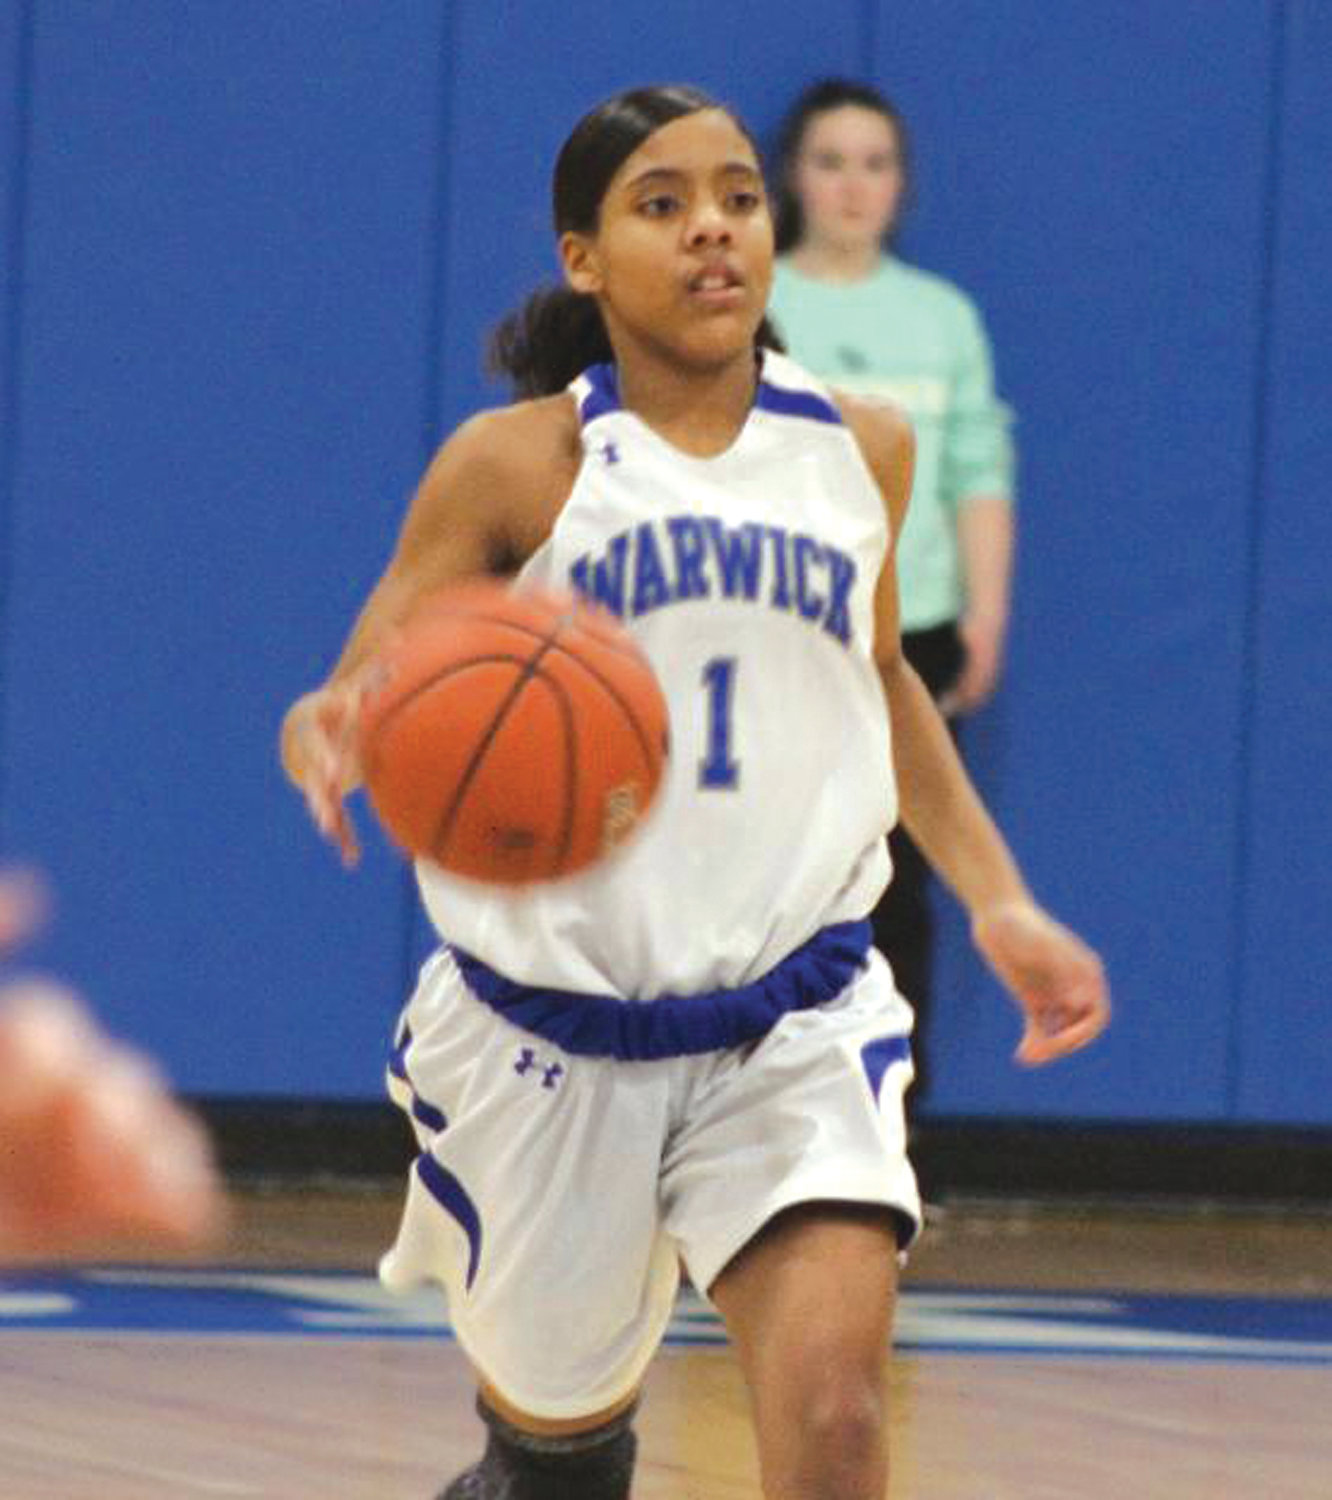 AT THE POINT: Warwick Vets' point guard Armani Rivera takes the ball up the court against Winman. Rivera has been a key piece to the Hurricanes' undefeated season.